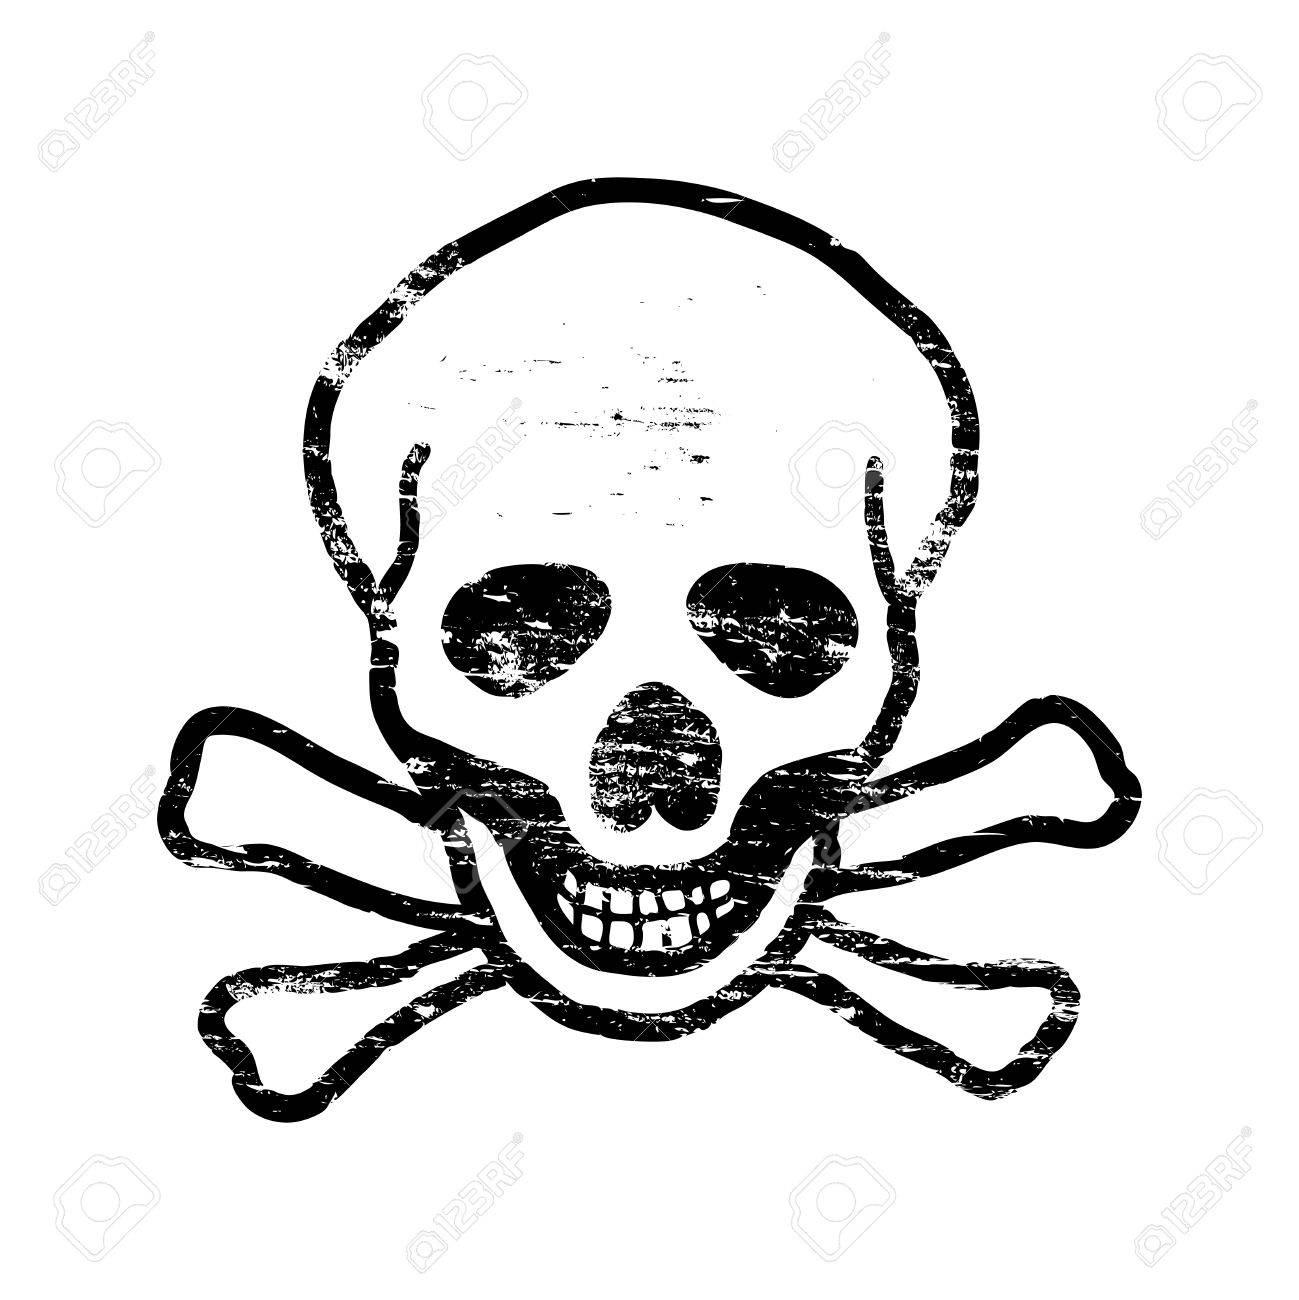 Skull And Crossbones Grungy Rubber Stamp Symbol Vector Illustration Stock